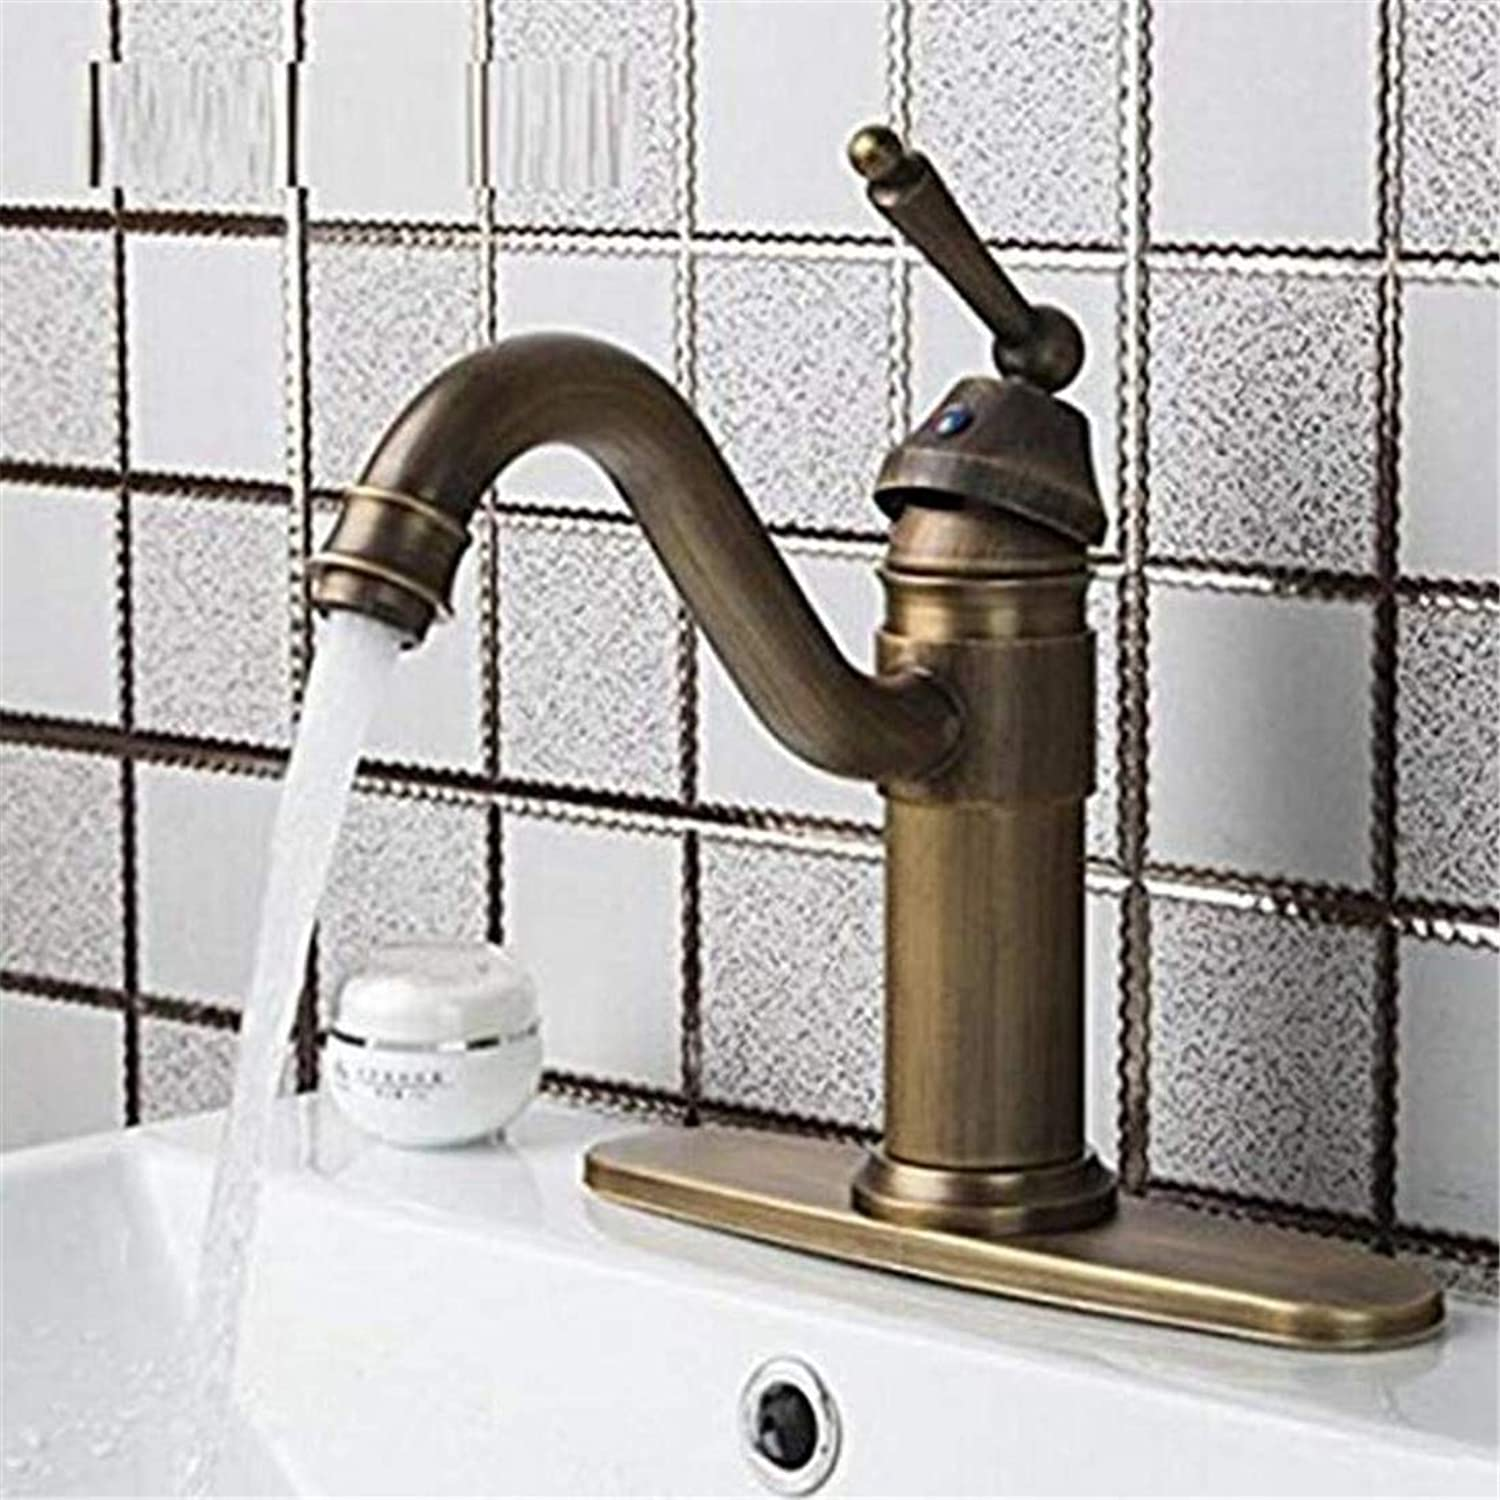 Faucet Luxury Plated Mixer Faucet Vintage Swivel Antique Brass Single Handle Cover Plate Hot Cold Hose Basin Kitchen Sink Faucet Mixer Taps